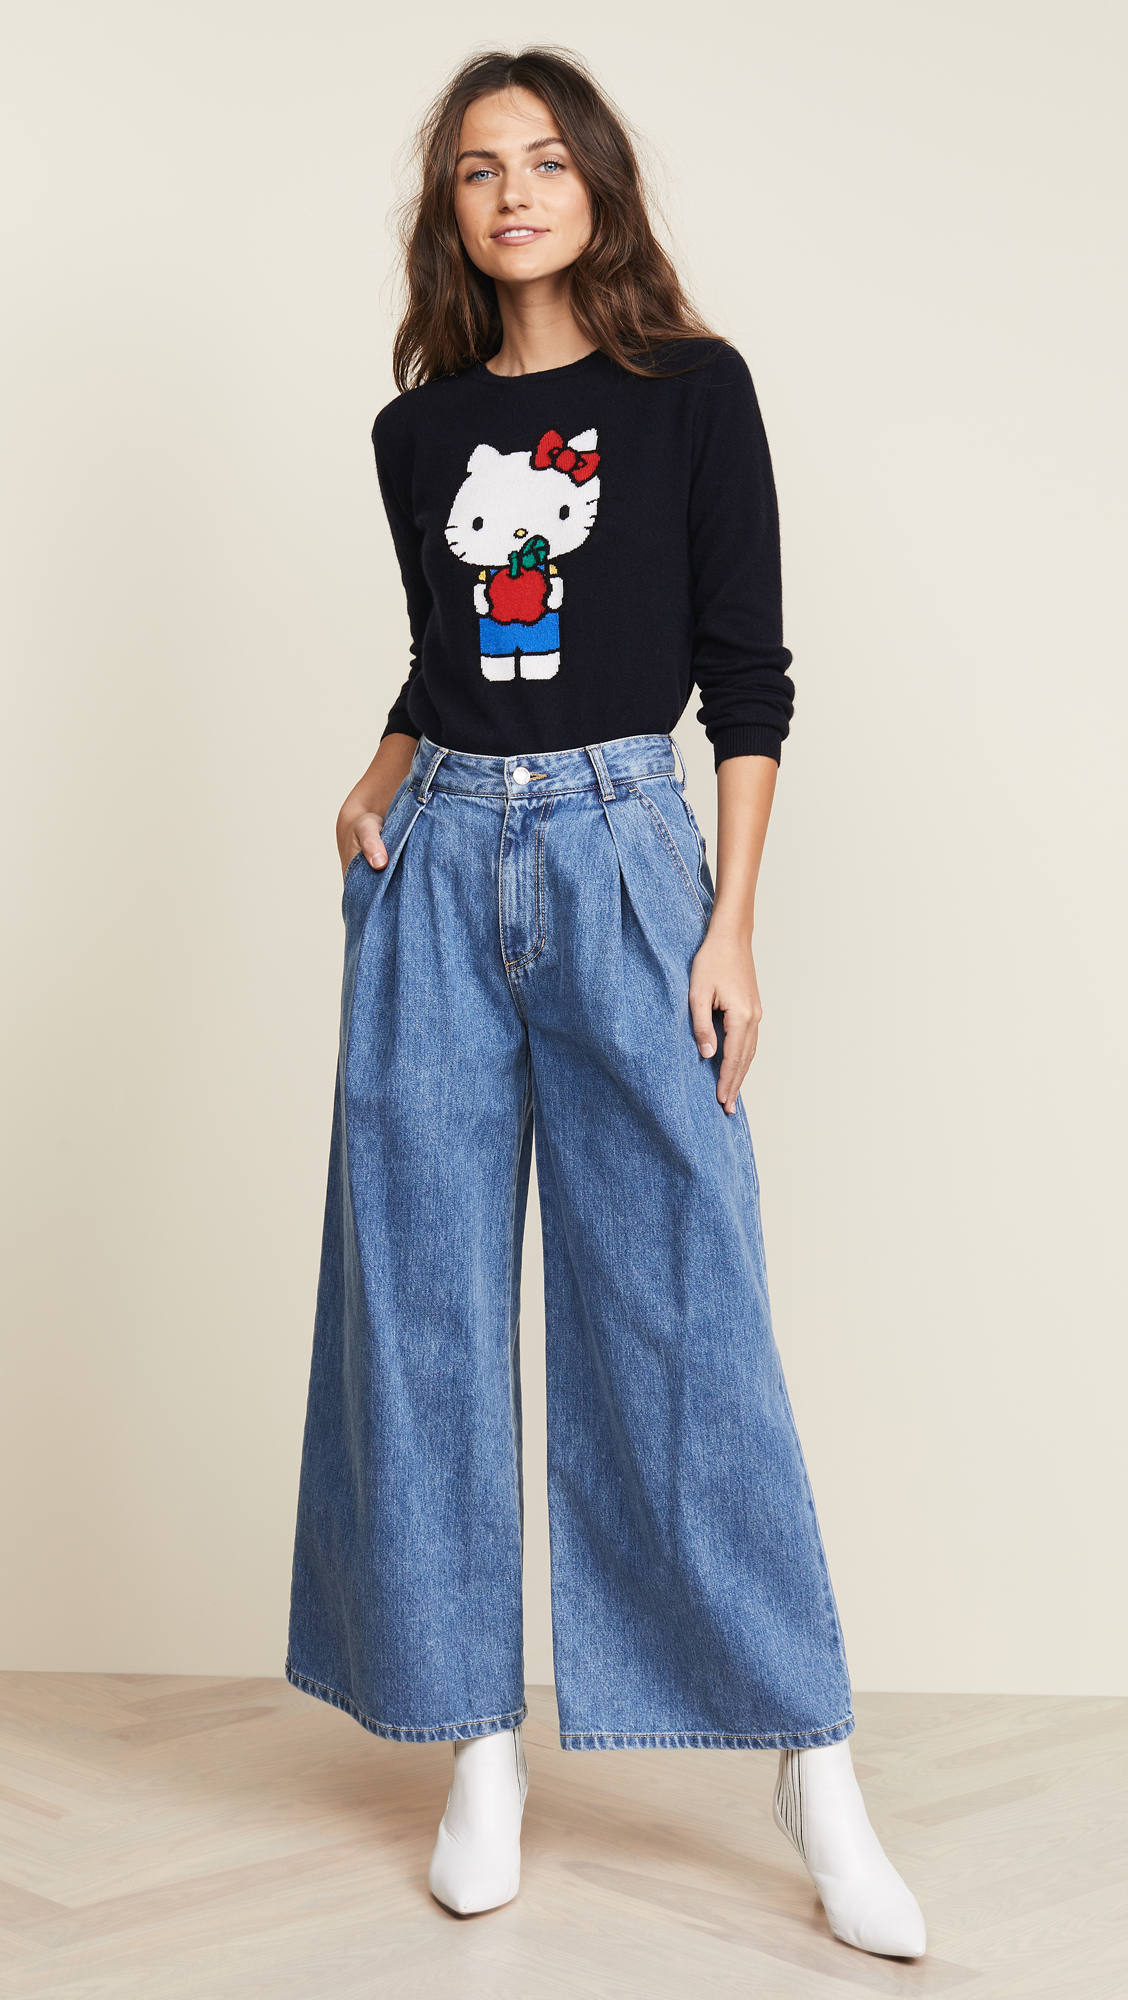 a53f90329 Chinti and Parker Hello Kitty Apples Cashmere Sweater | SHOPBOP